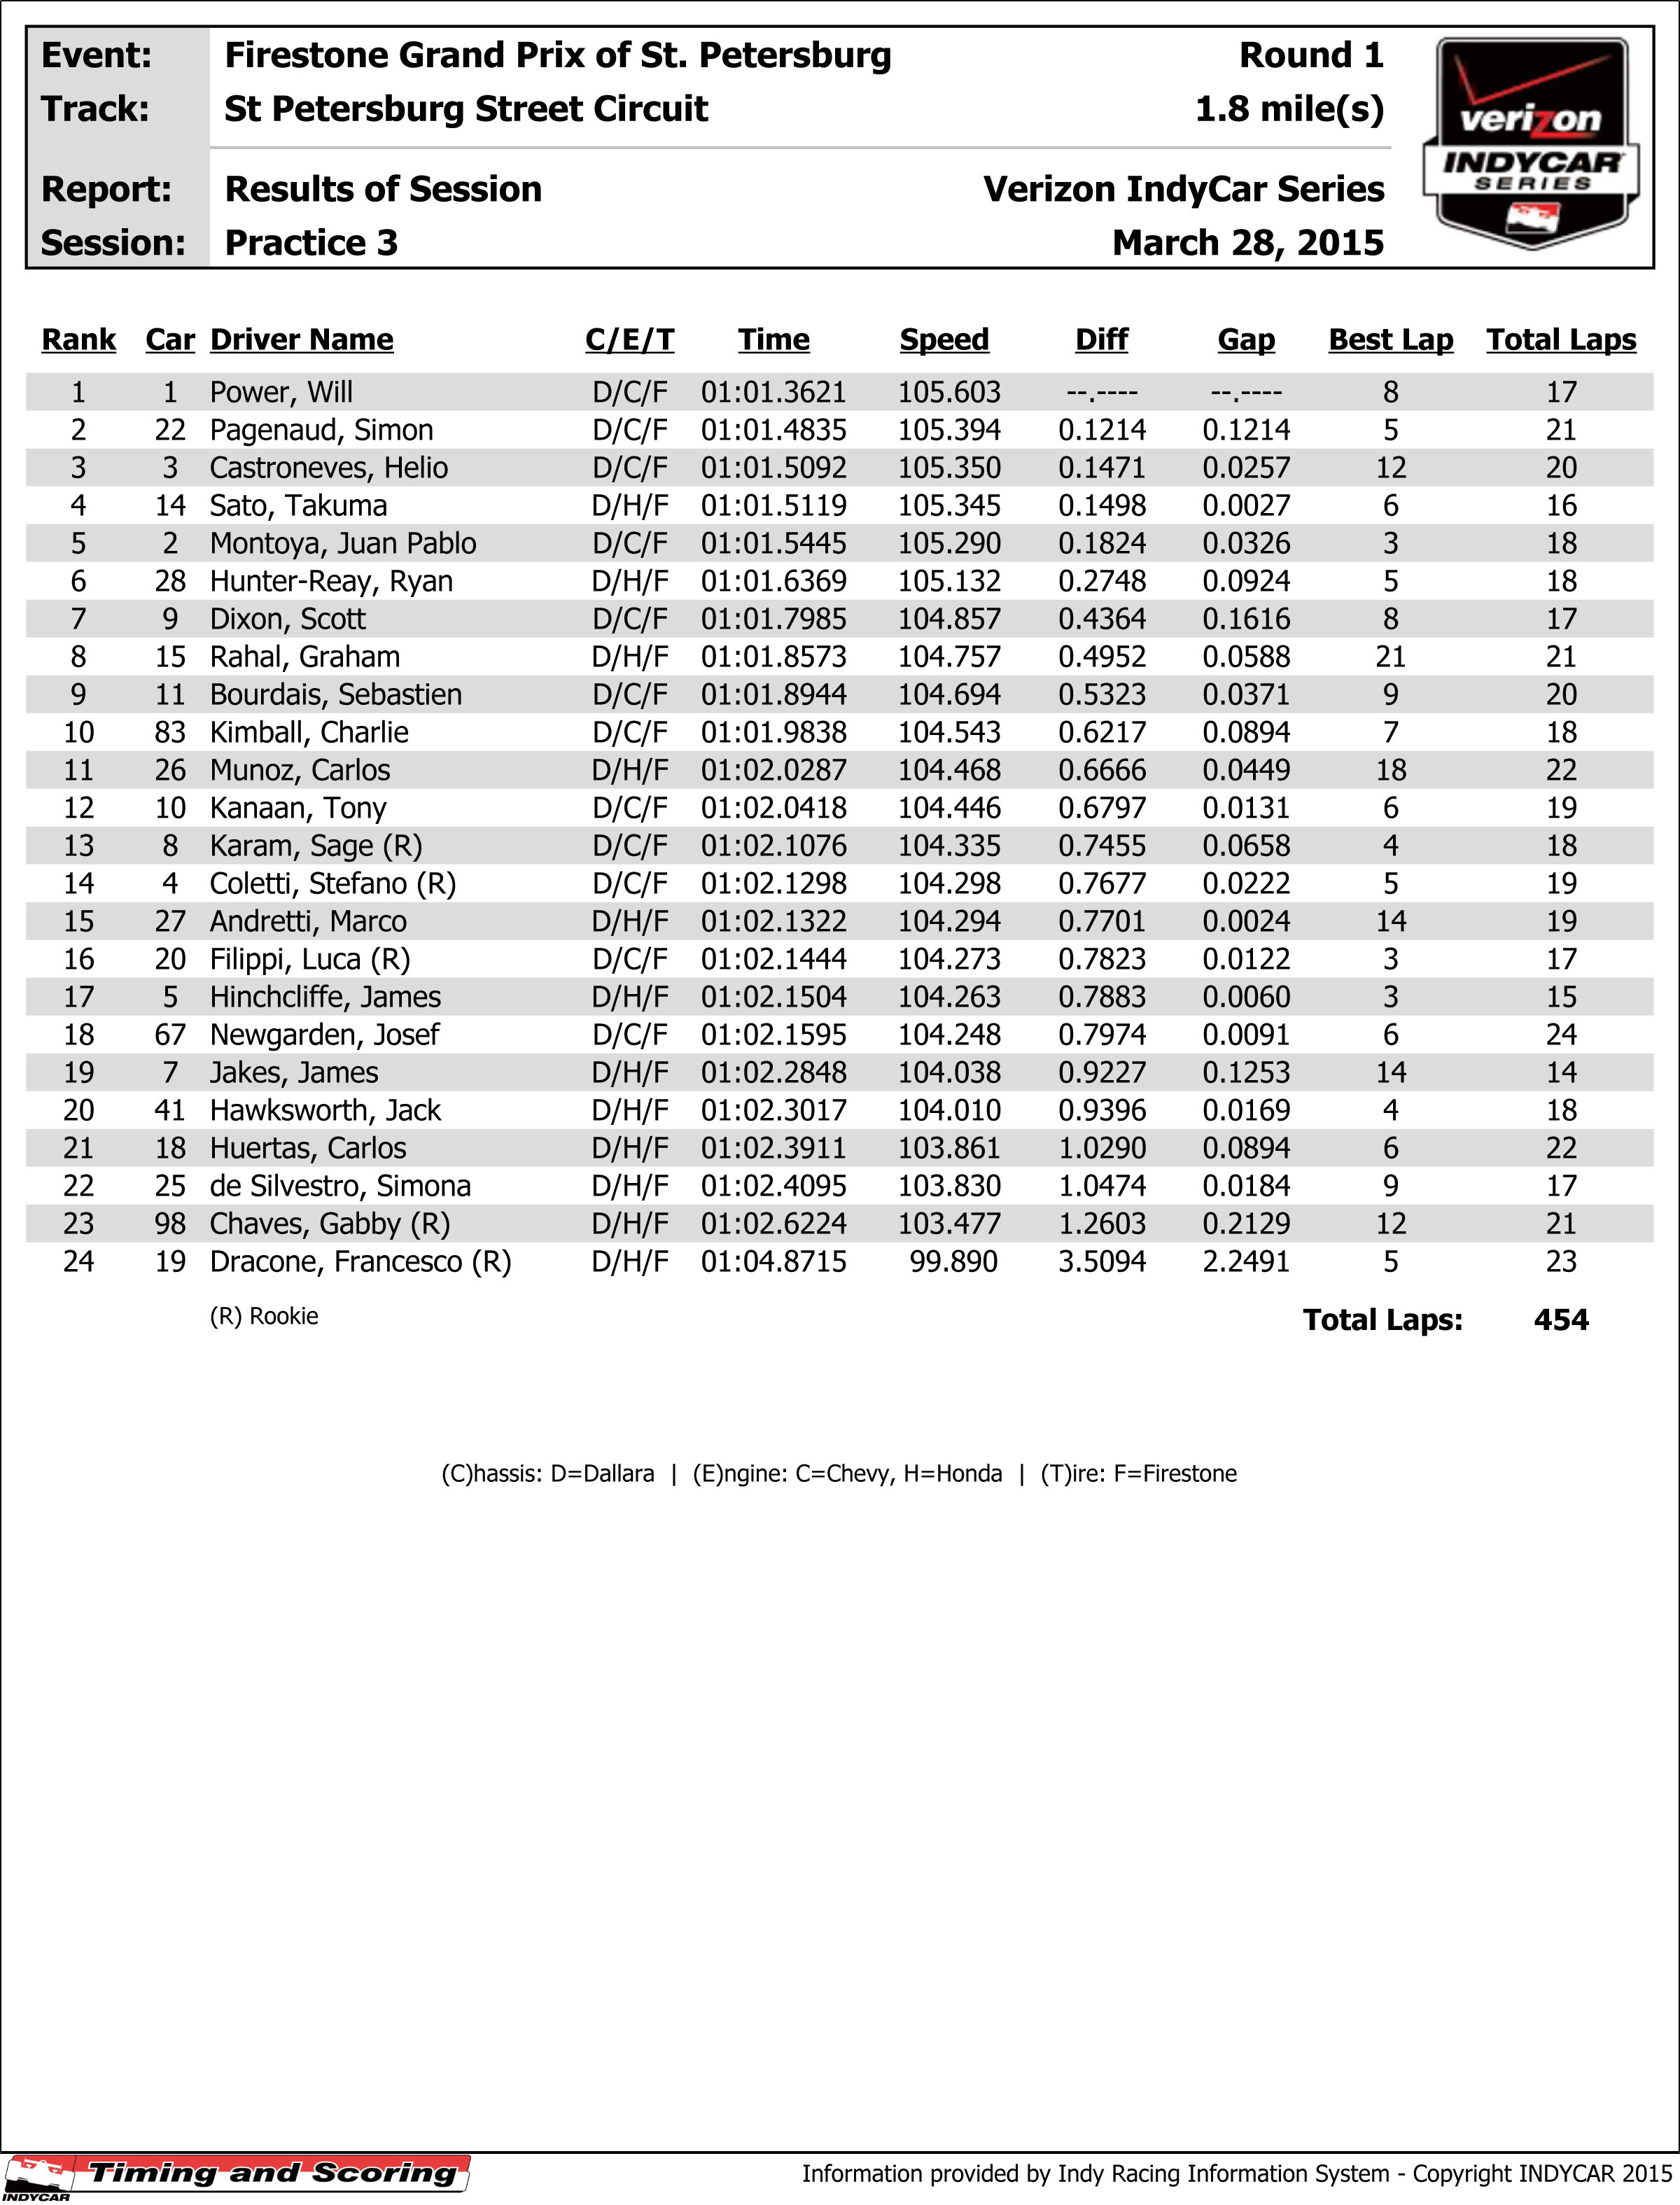 Practice - Results